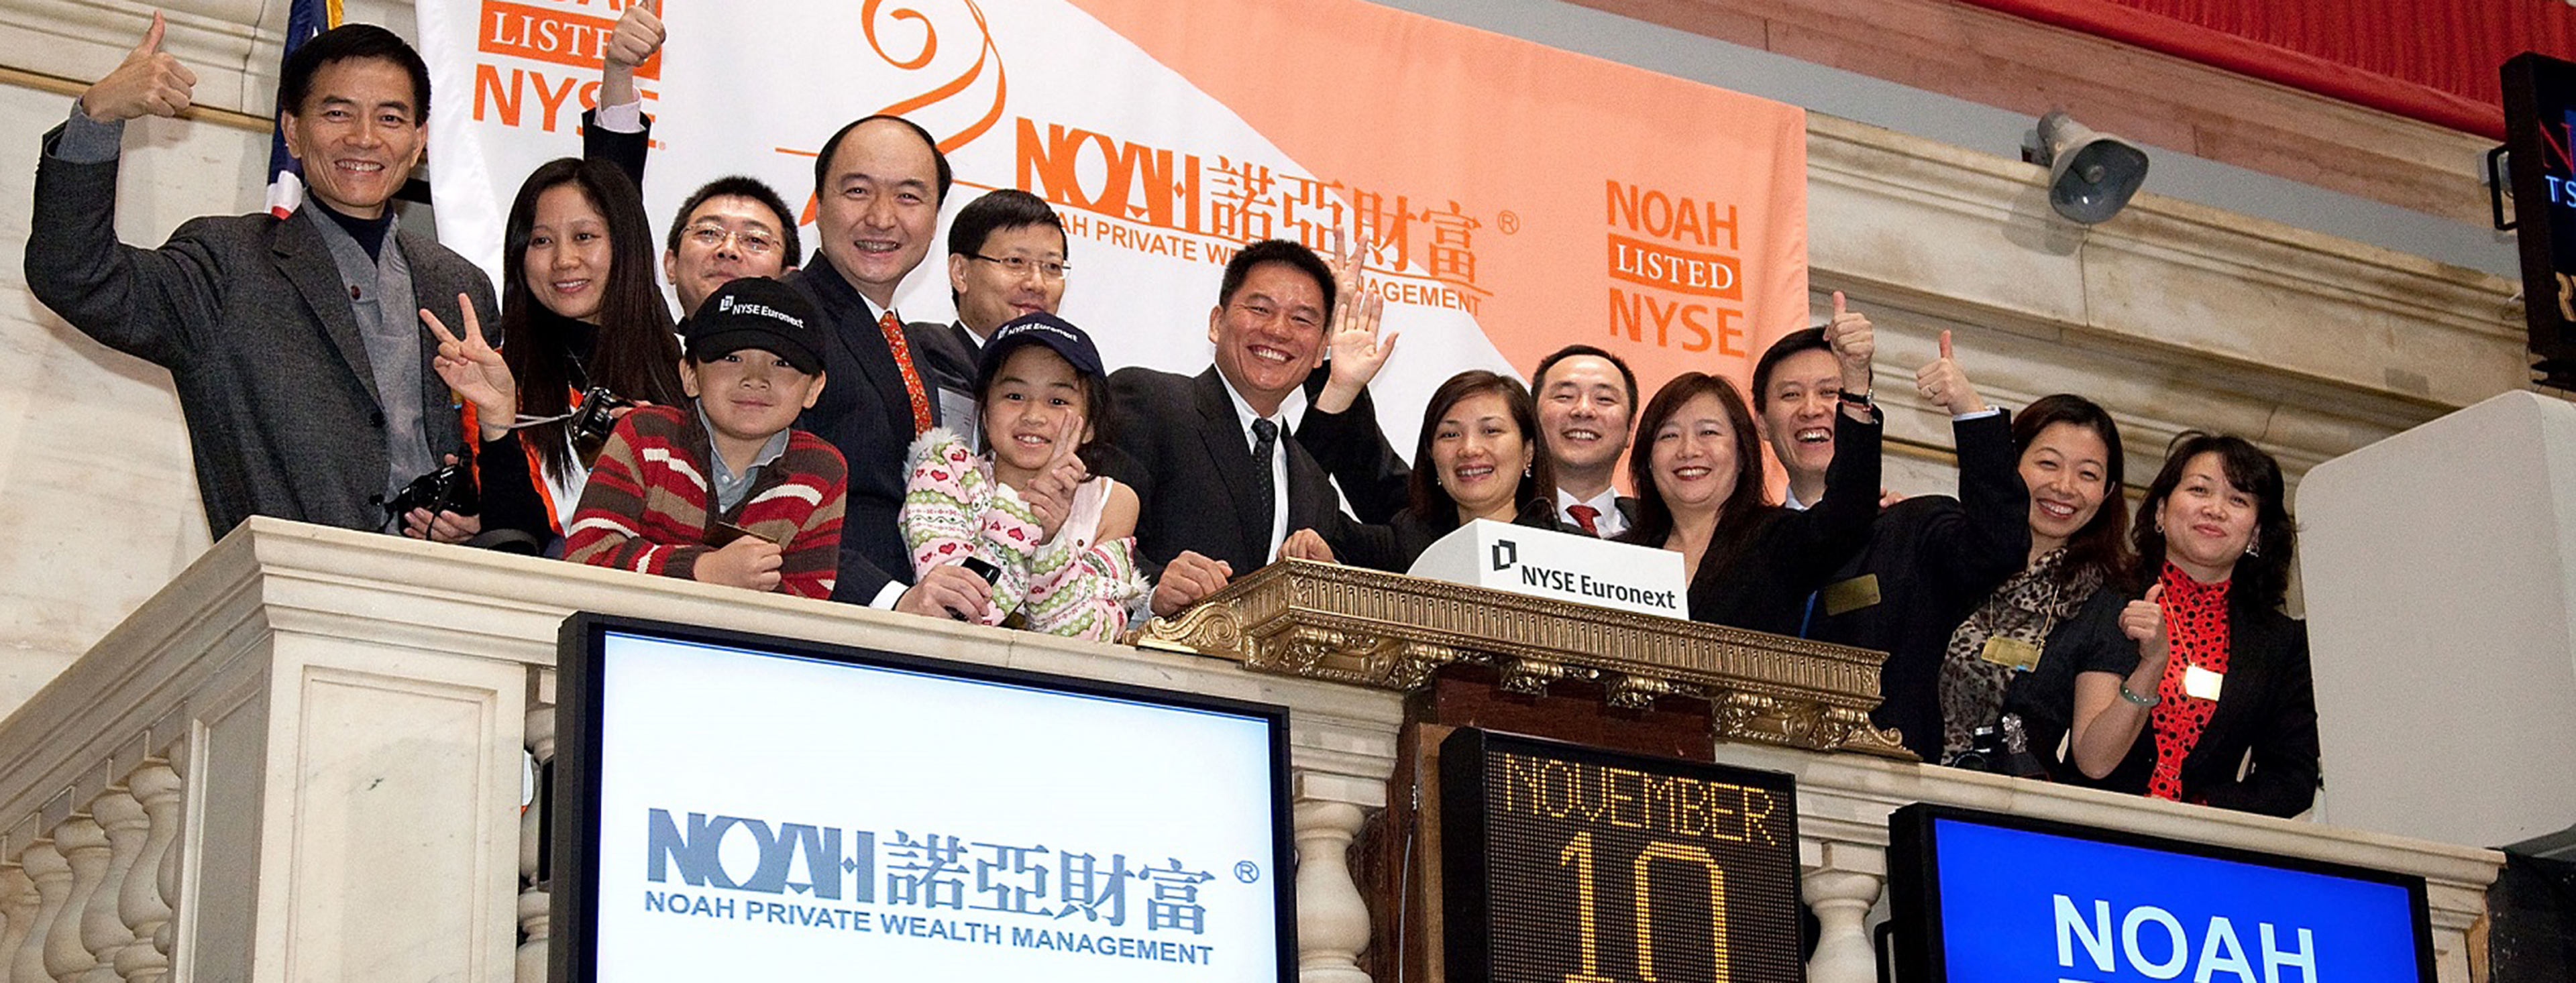 NEW YORK, NY - NOVEMBER 10: Chairwoman and CEO Jingbo Wangto rings the opening bell at the New York Stock Exchange on November 10, 2010 in New York City.  (Photo by Ben Hider/NYSE Euronext)